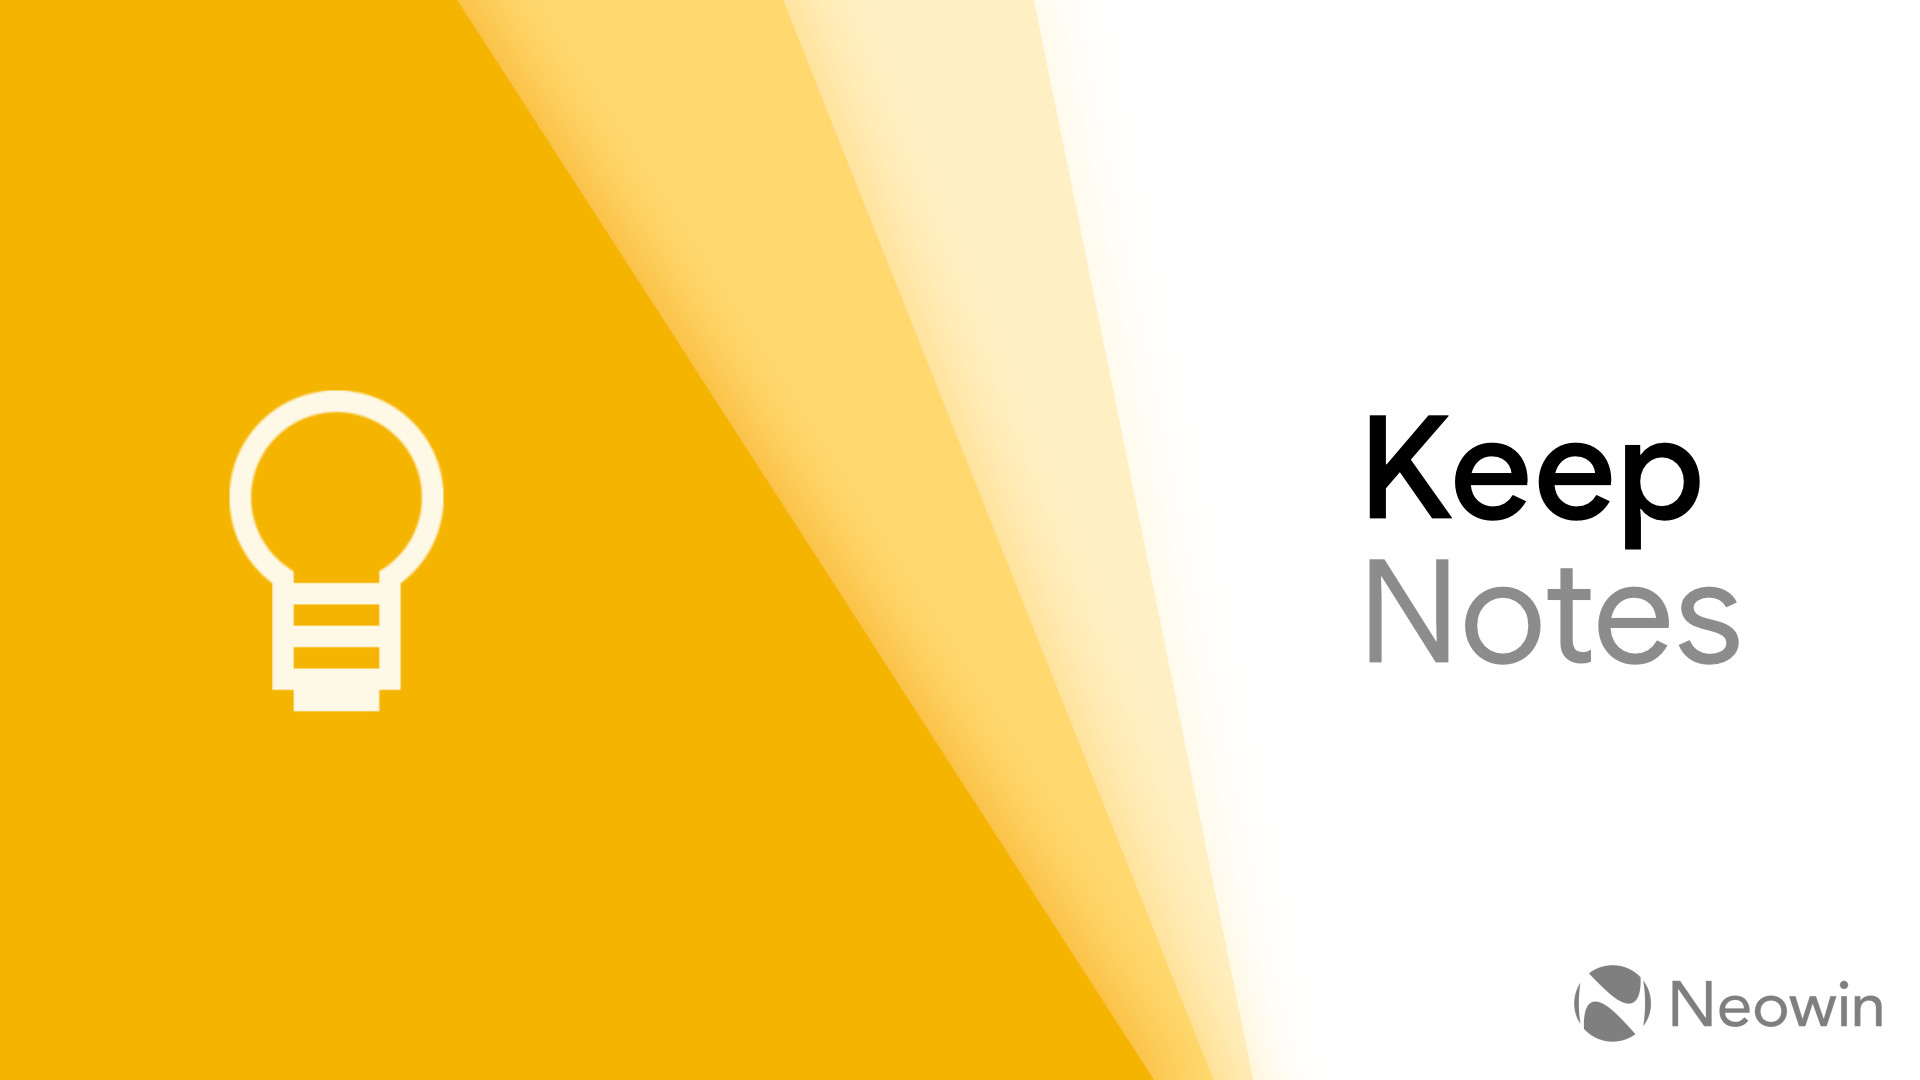 Google is renaming Keep to 'Keep Notes' for some reason